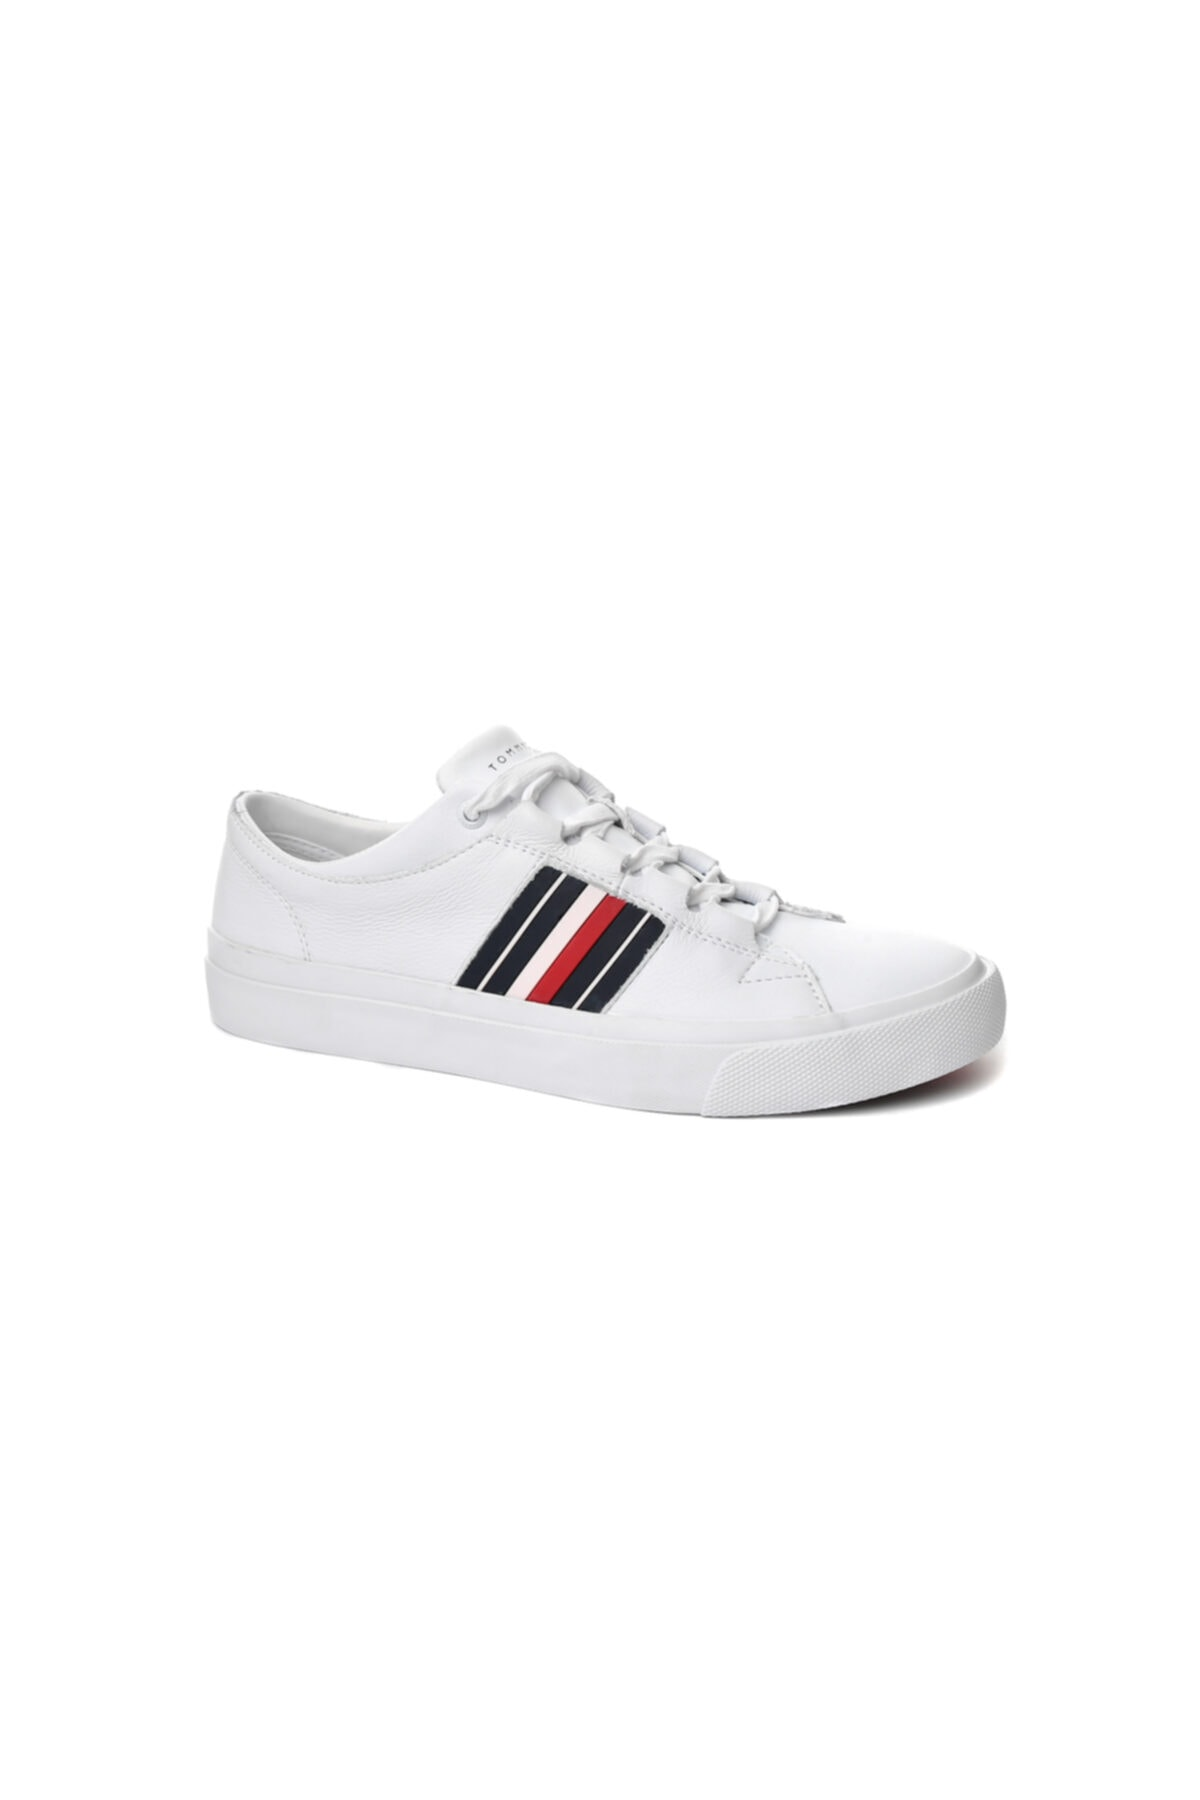 Tommy Hilfiger Beyaz Erkek Oxford/ayakkabı Fm0fm01943 100 Corporate Leather Low Sneaker Low Cut Whıt 1